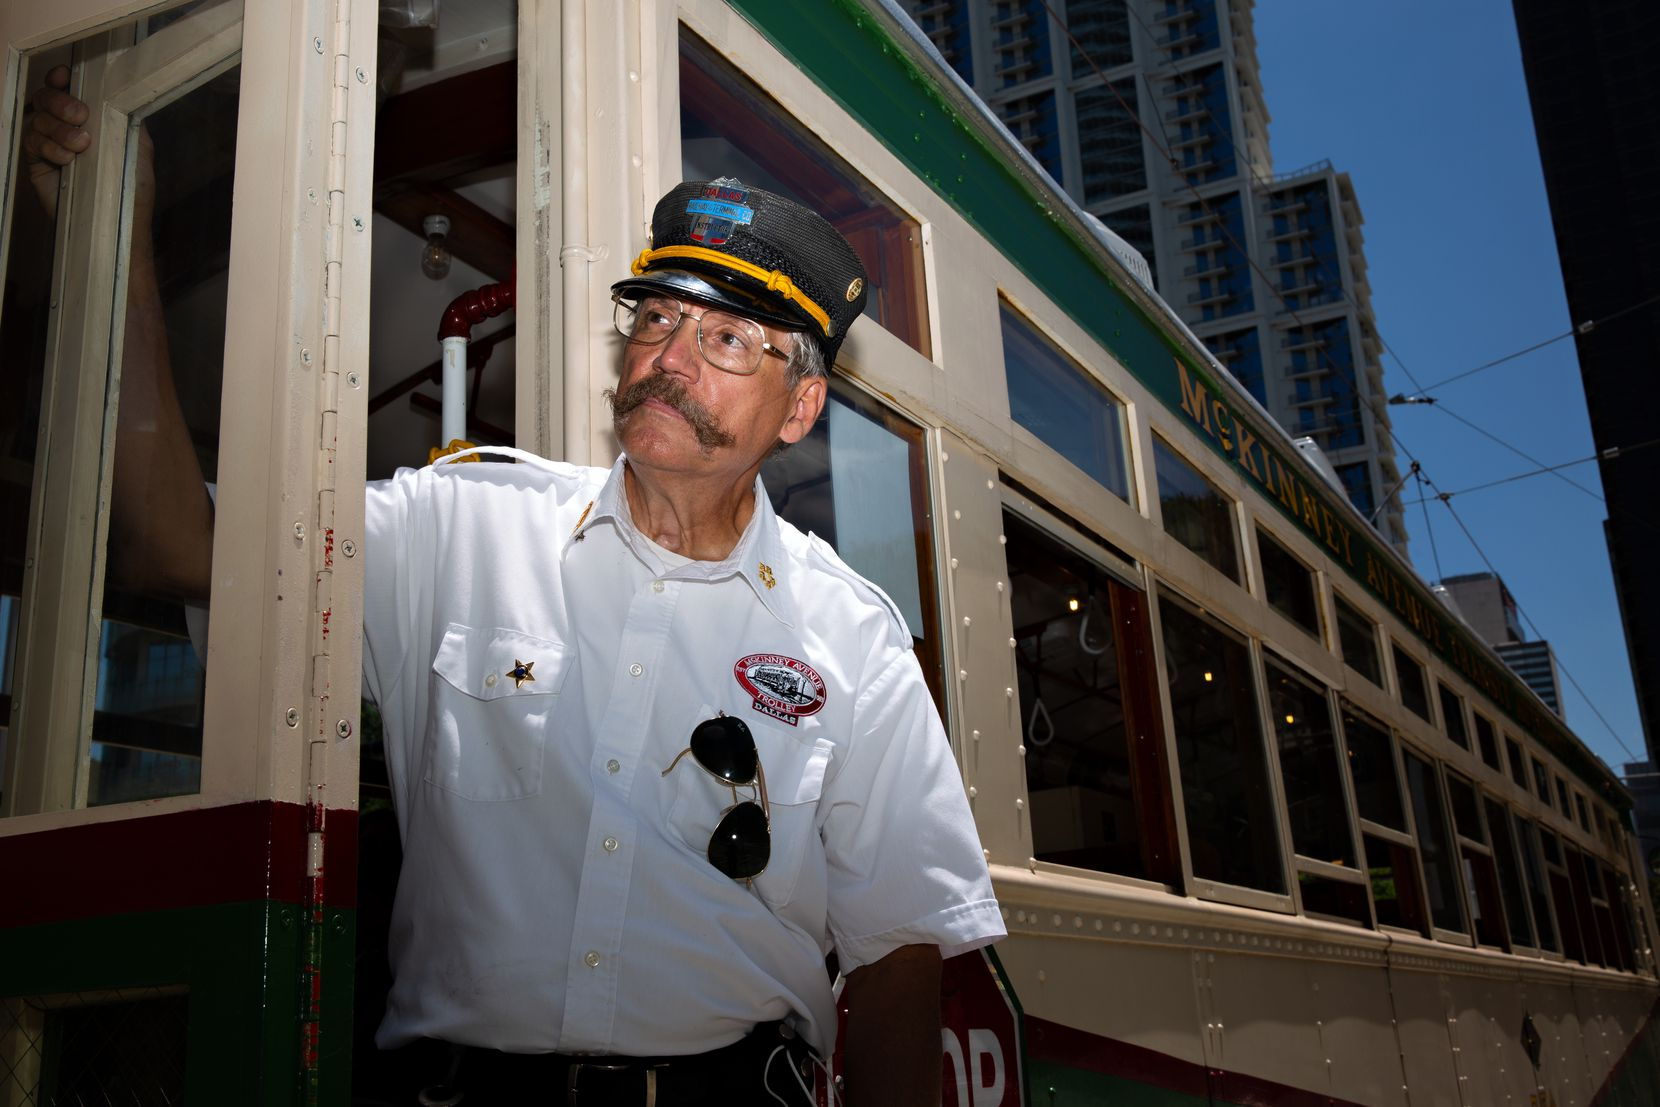 """John Landrum, vice president of operations, systems and technology for the McKinney Avenue Transit Authority, has over 38 years of experience in the streetcar business. He hops around in his duties, occasionally operating the streetcars himself. """"We're a very small organization, so everybody has to wear a lot of hats and be very capable,"""" he said."""